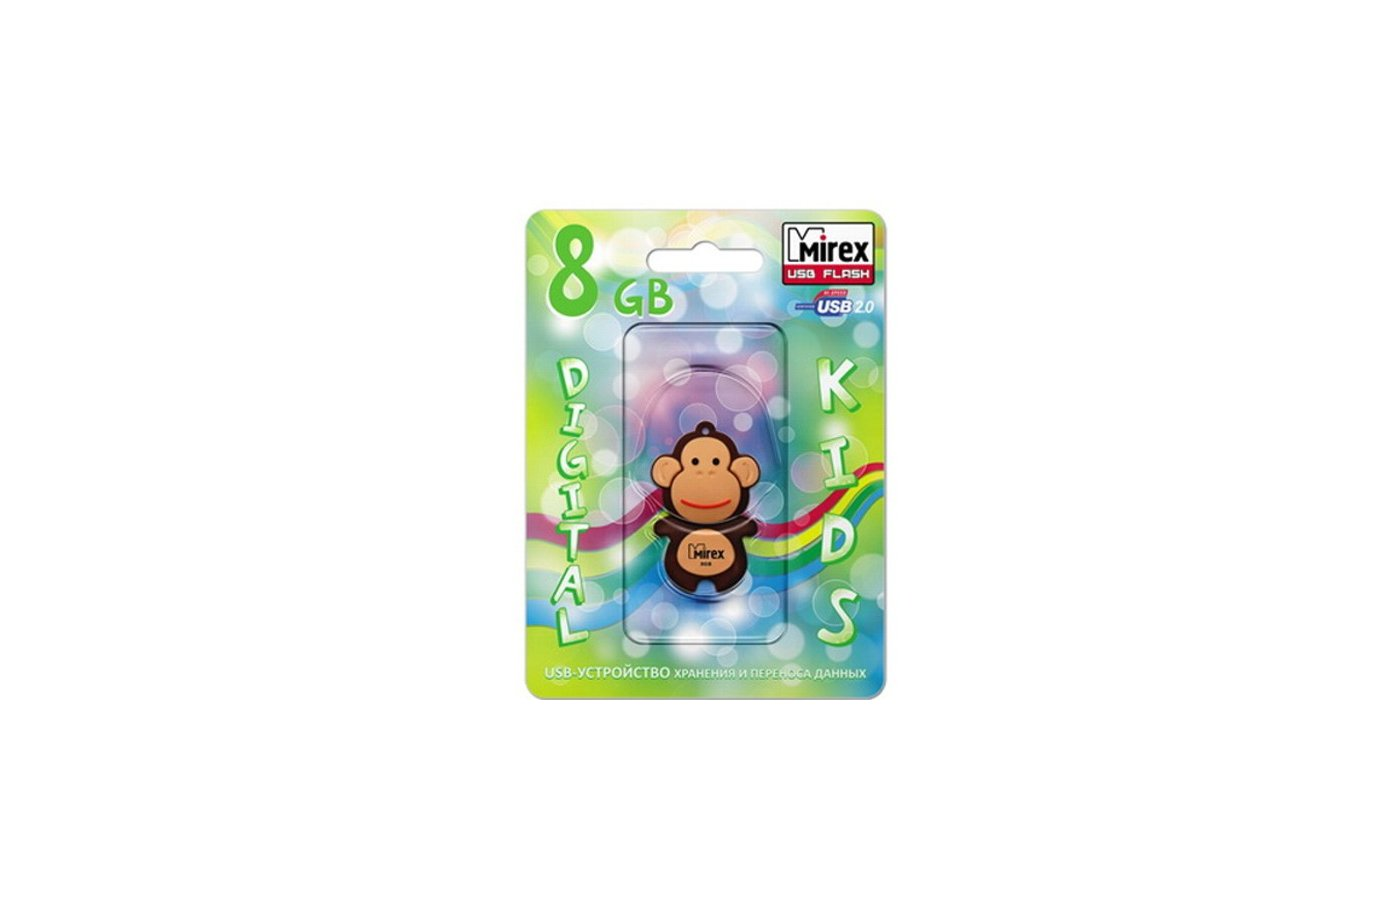 Флеш-диск USB 2.0 Mirex MONKEY 8GB BROWN (13600-KIDMKB08)